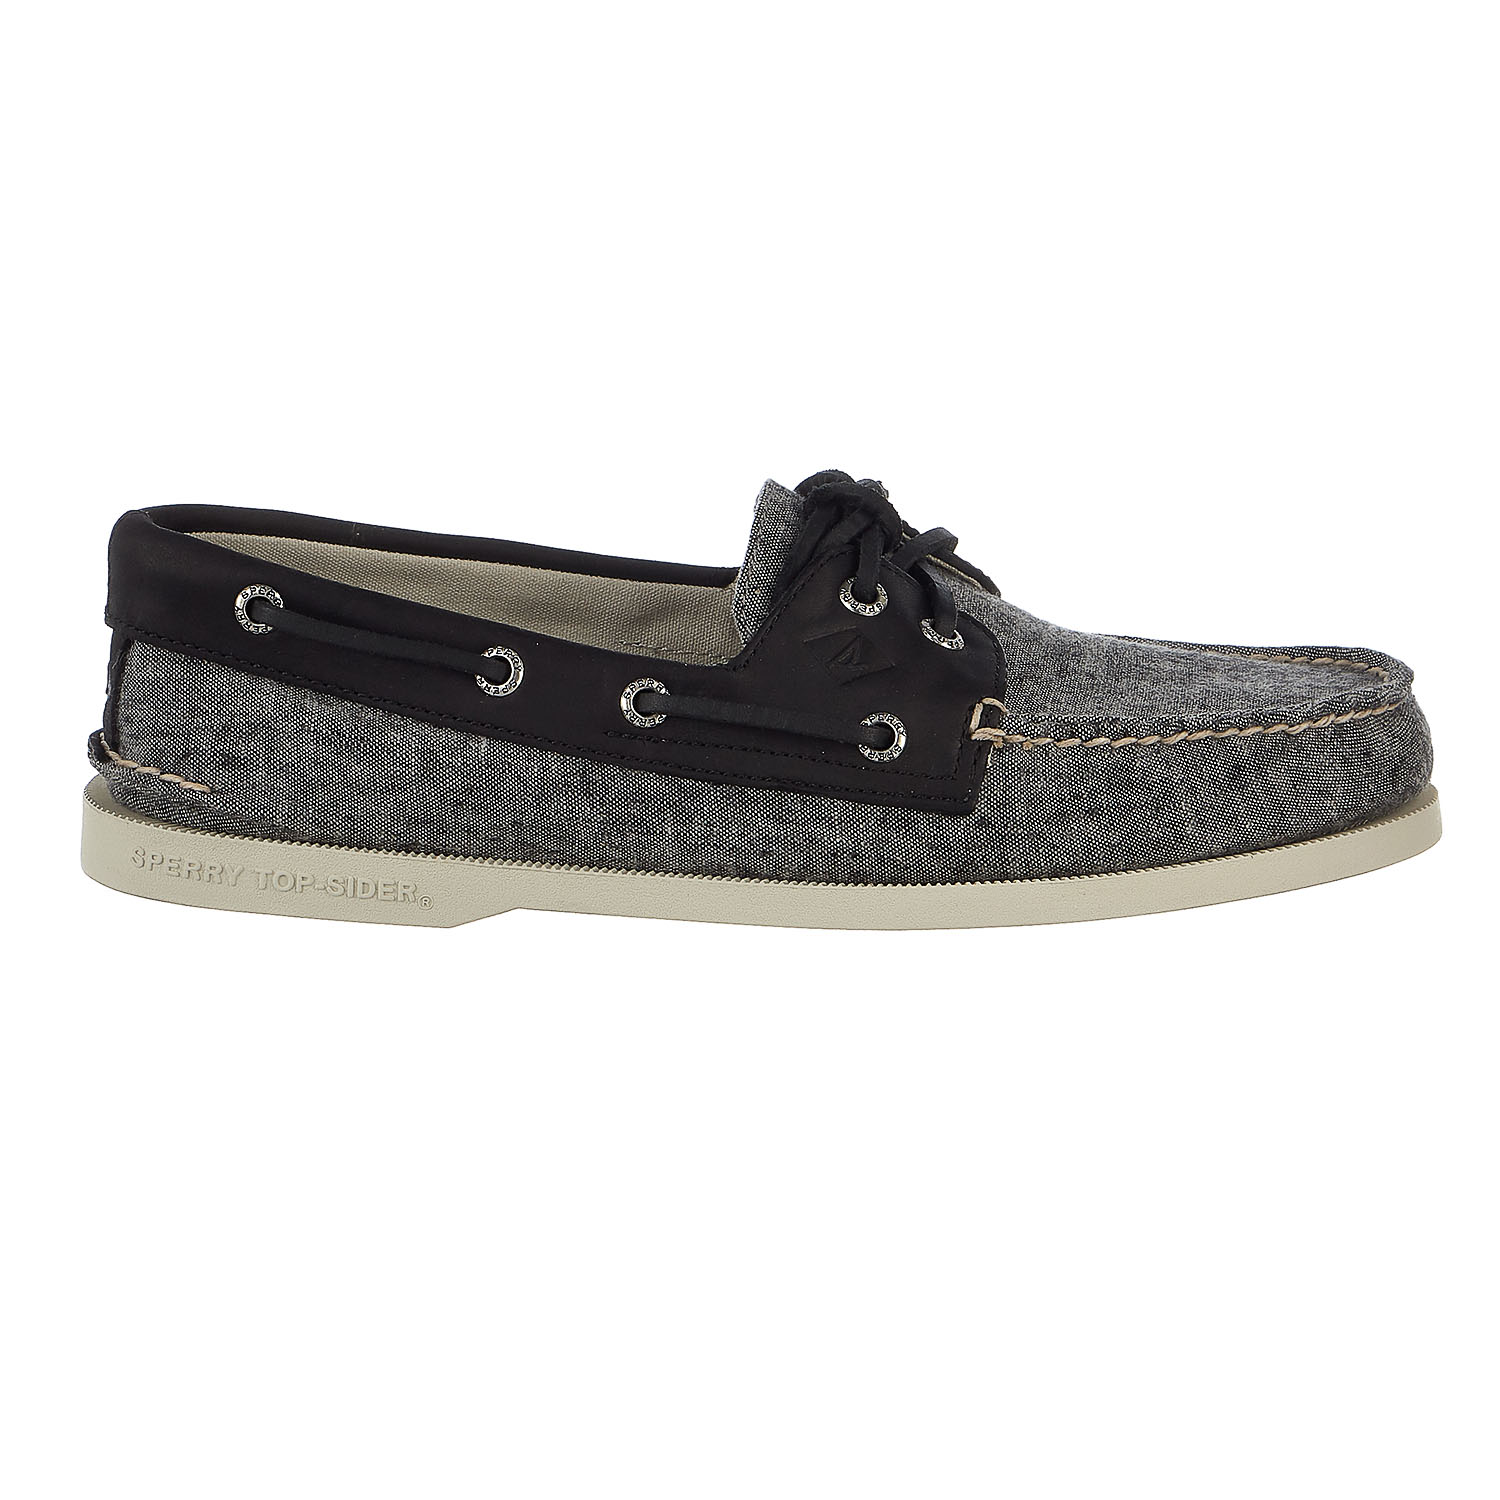 Sperry Top-Sider Authentic Original 2-Eye Linen Boat Shoe...